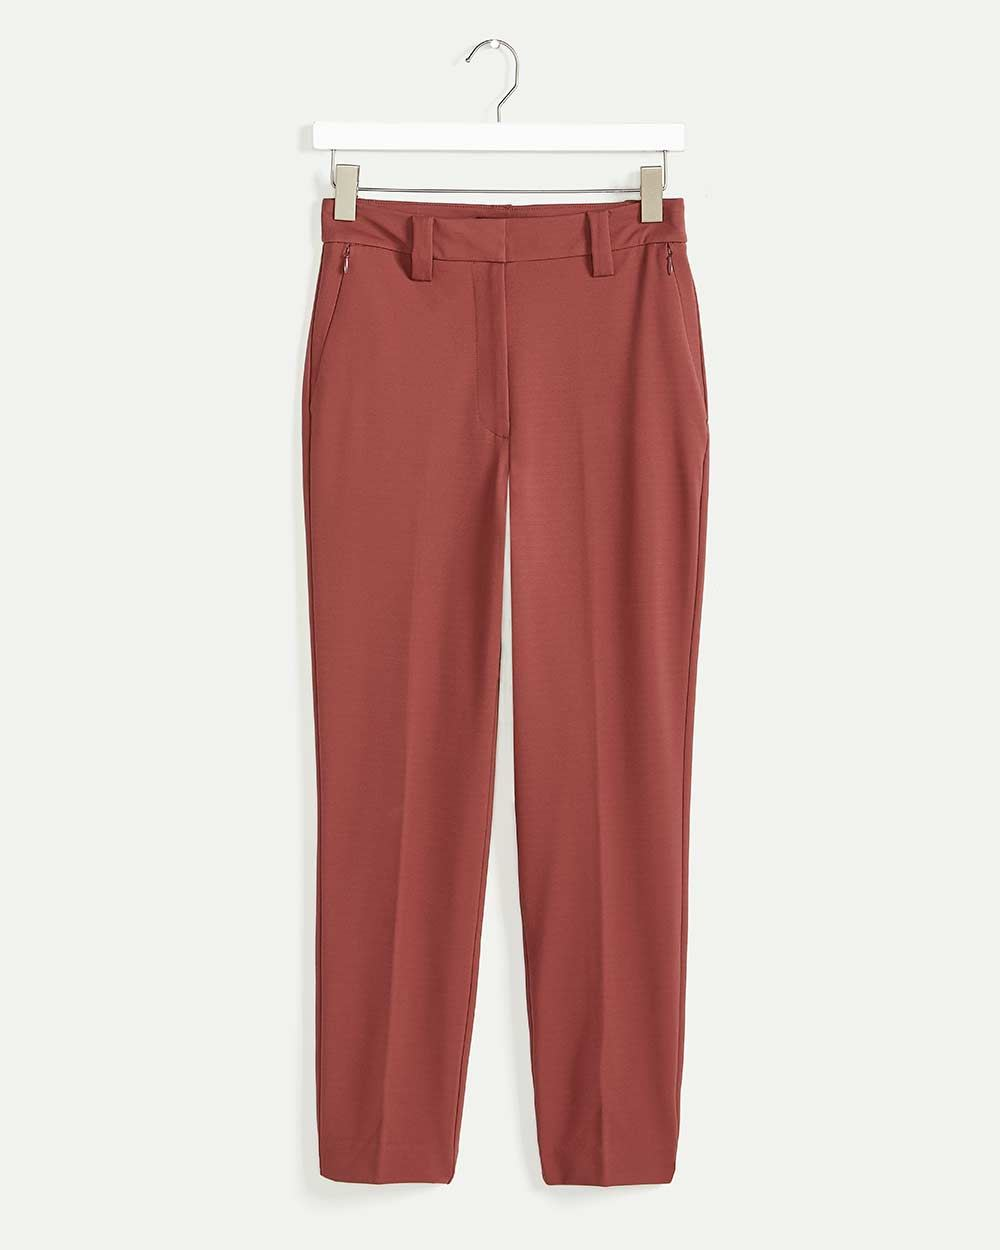 Super High Rise Ankle Pants The Curvy - Petite